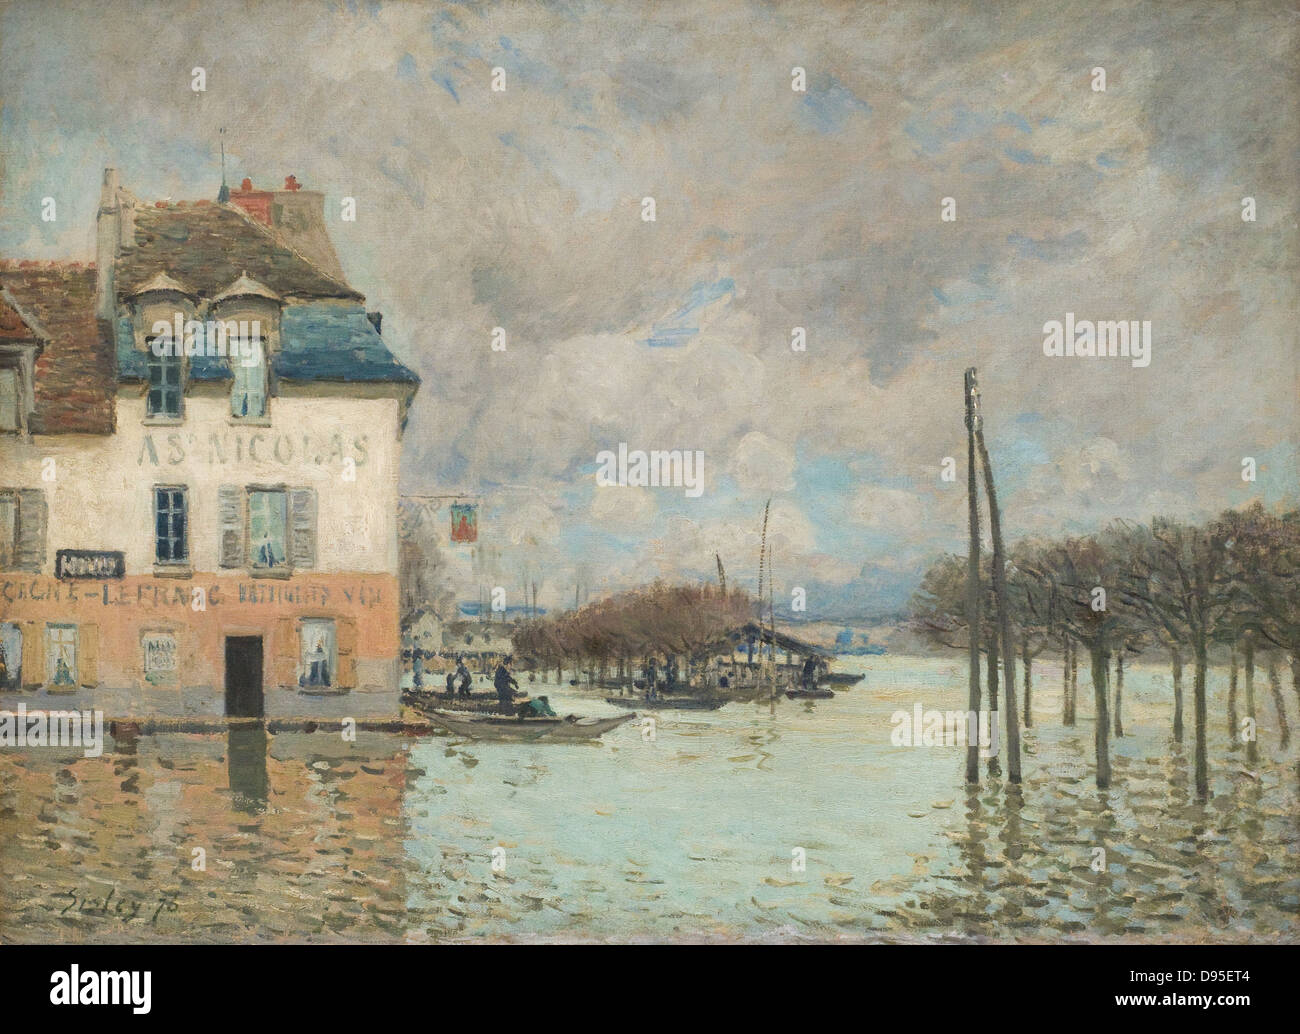 Alfred Sisley L'inondation à Port-Marly - Flood at Port Marly 1876 XIX th century French school Orsay Museum - Stock Image